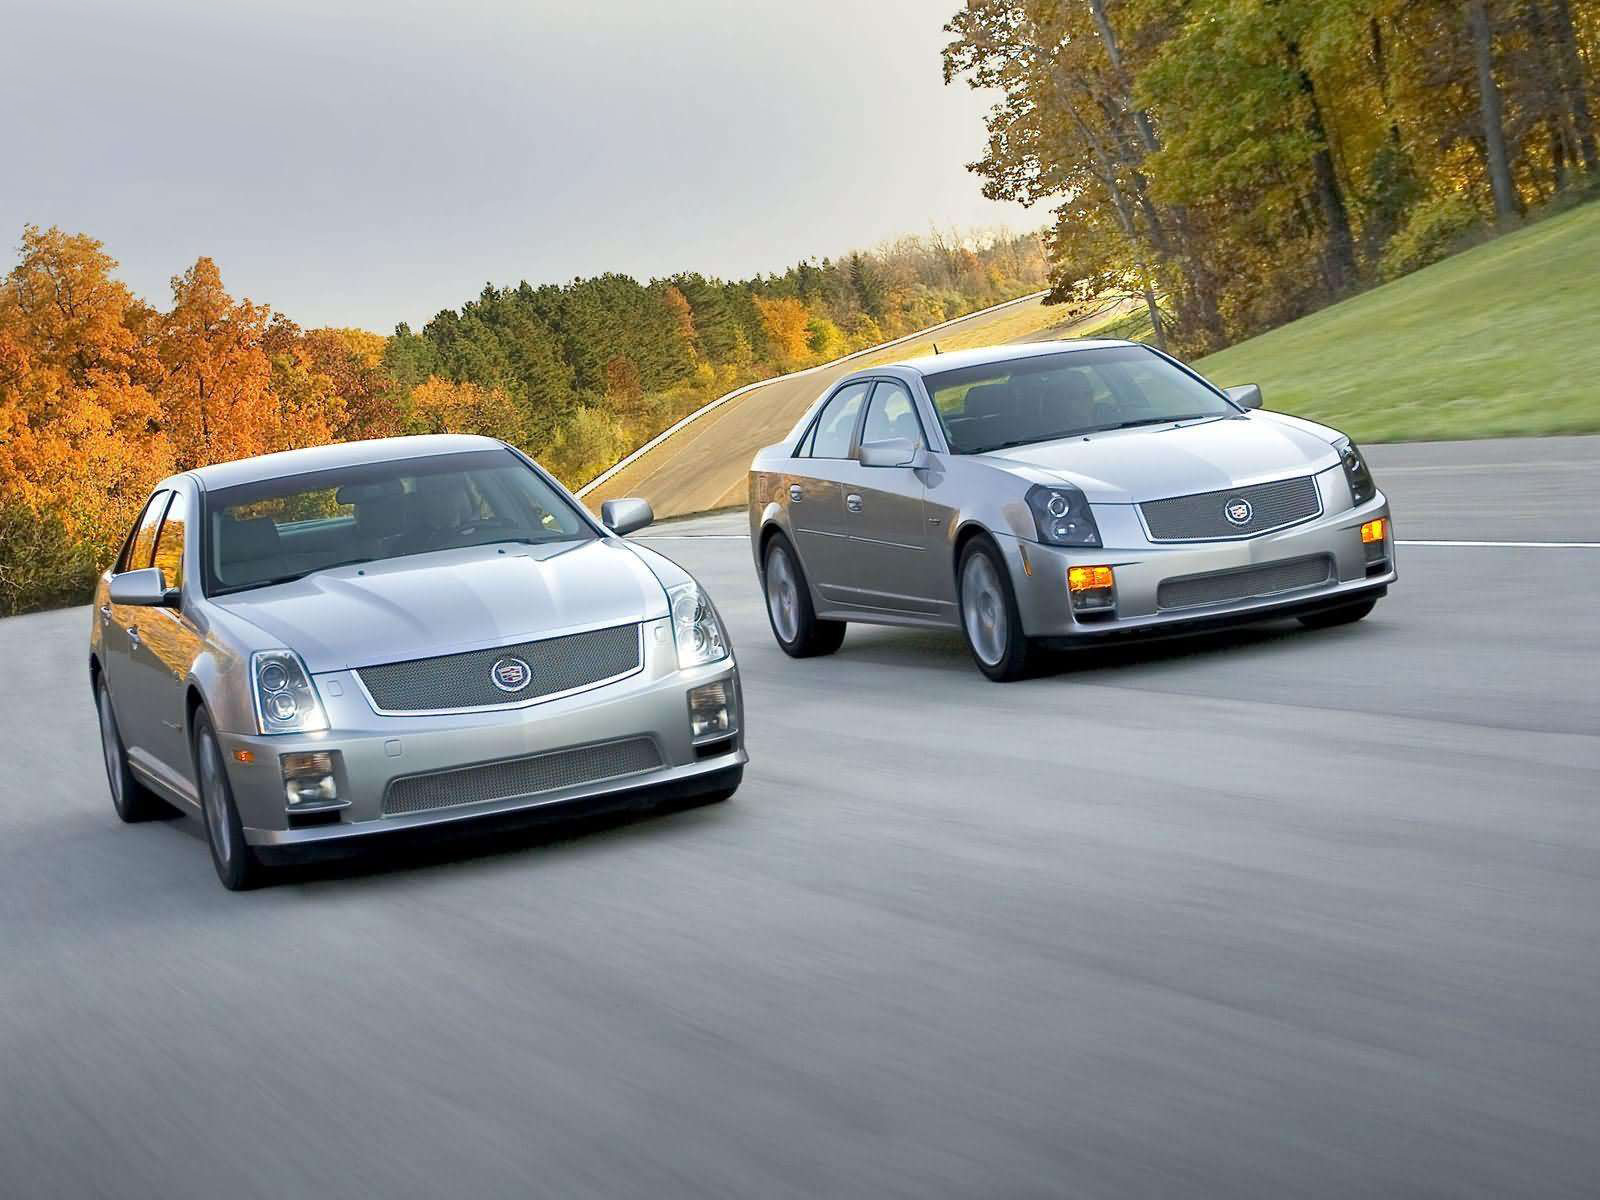 CADILLAC STS-V - Review and photos